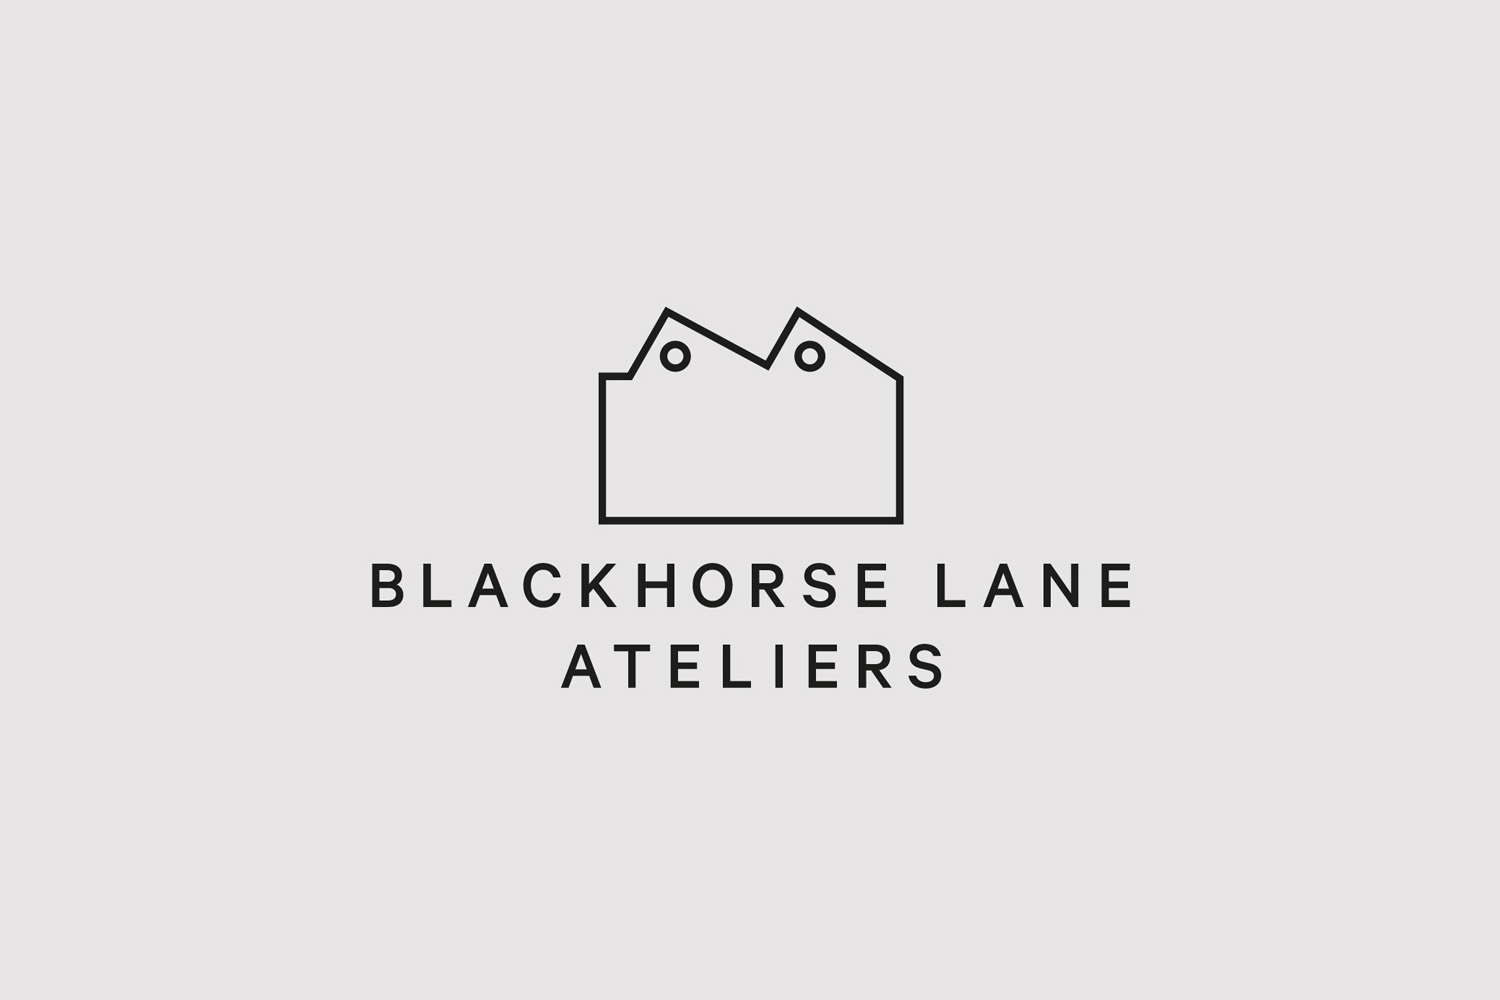 Logo design by StudioSmall for premium selvedge and organic raw denim jeans brand Blackhorse Lane Ateliers.